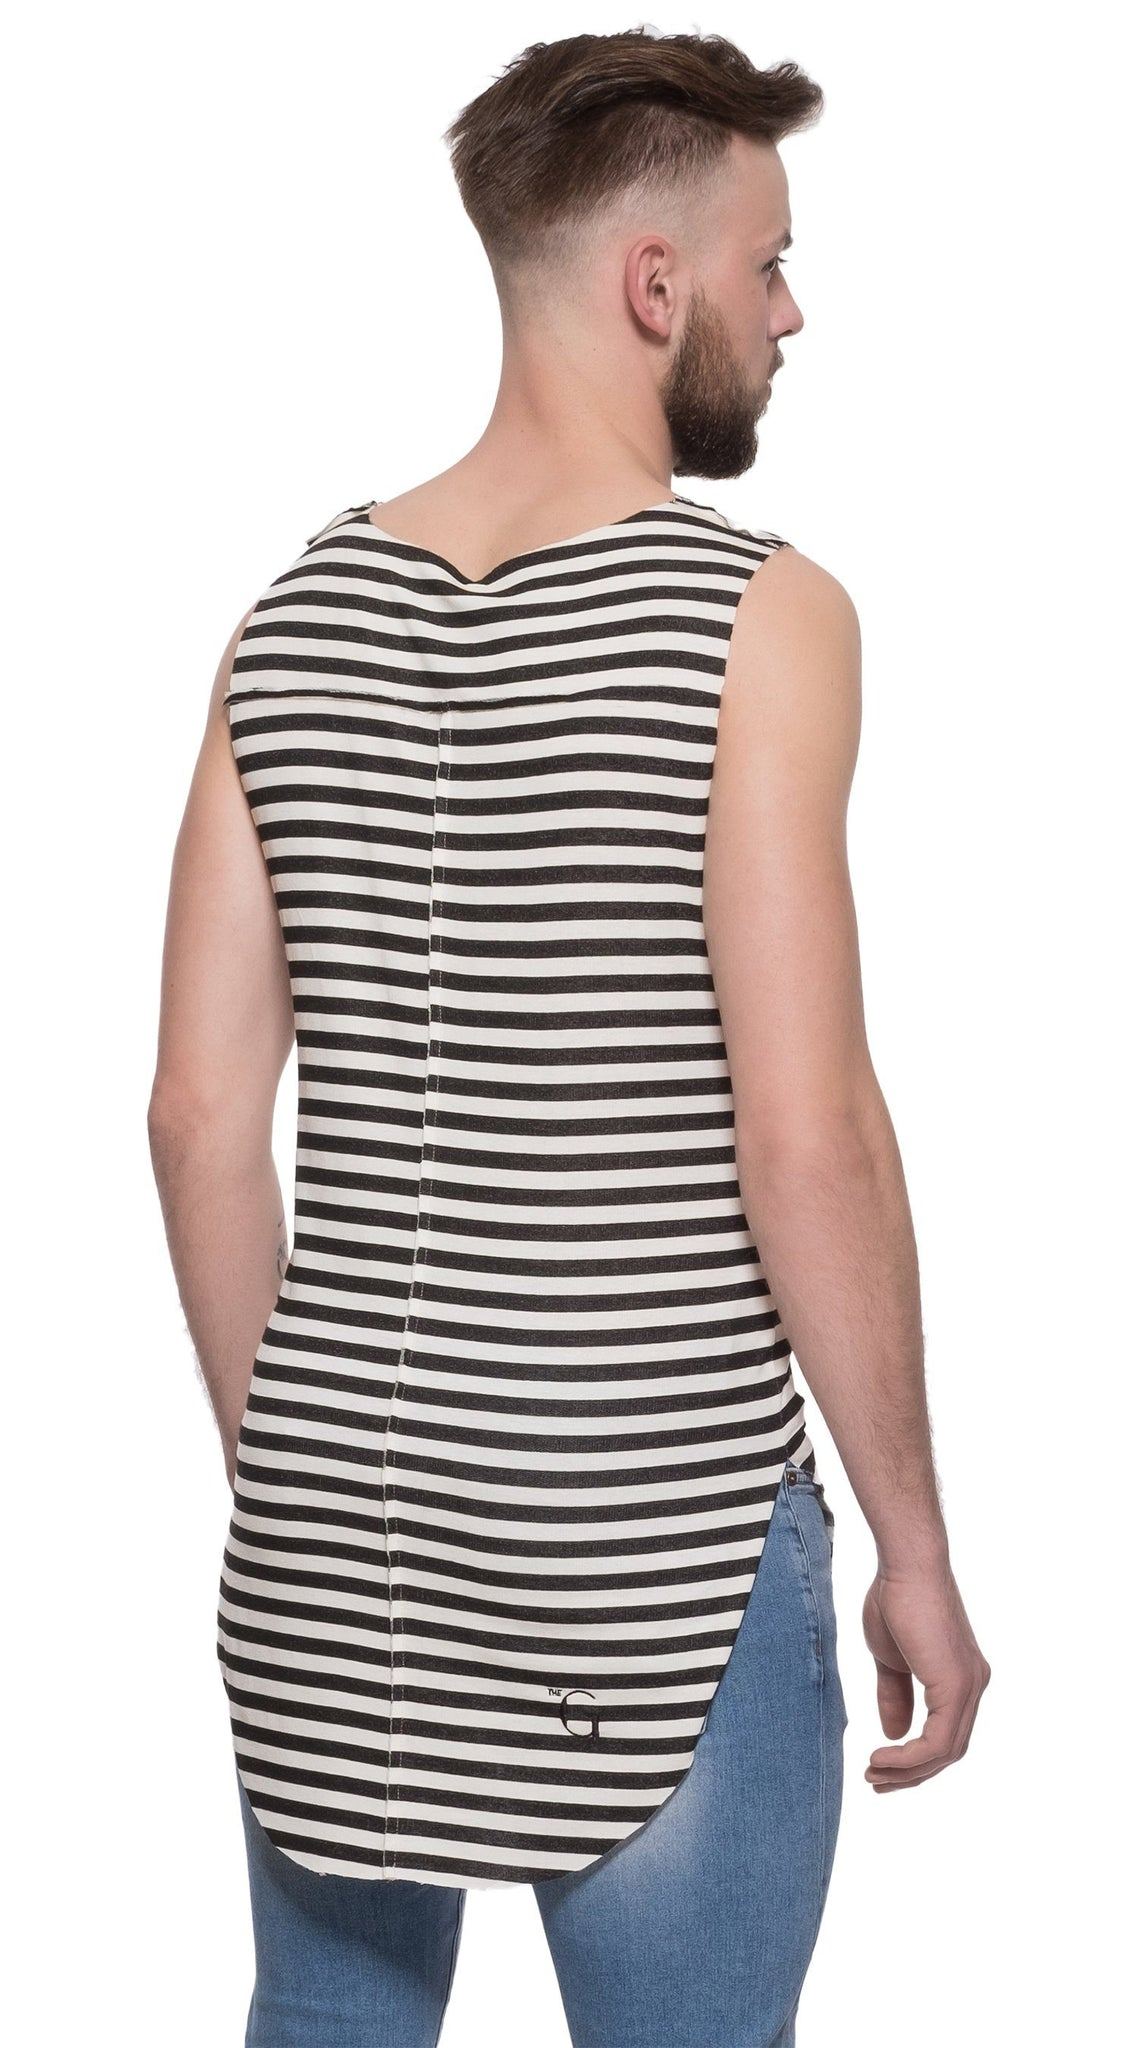 TheG Man Viscose Long Tank // striped